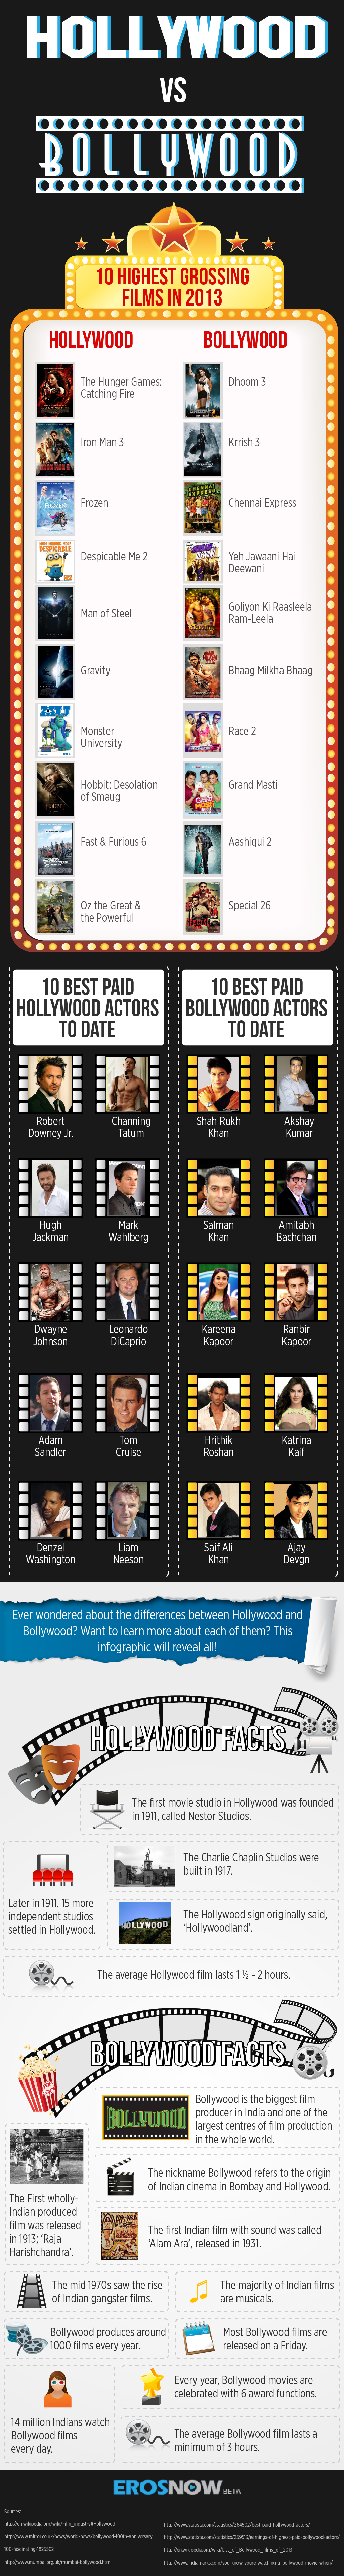 Hollywood vs Bollywood